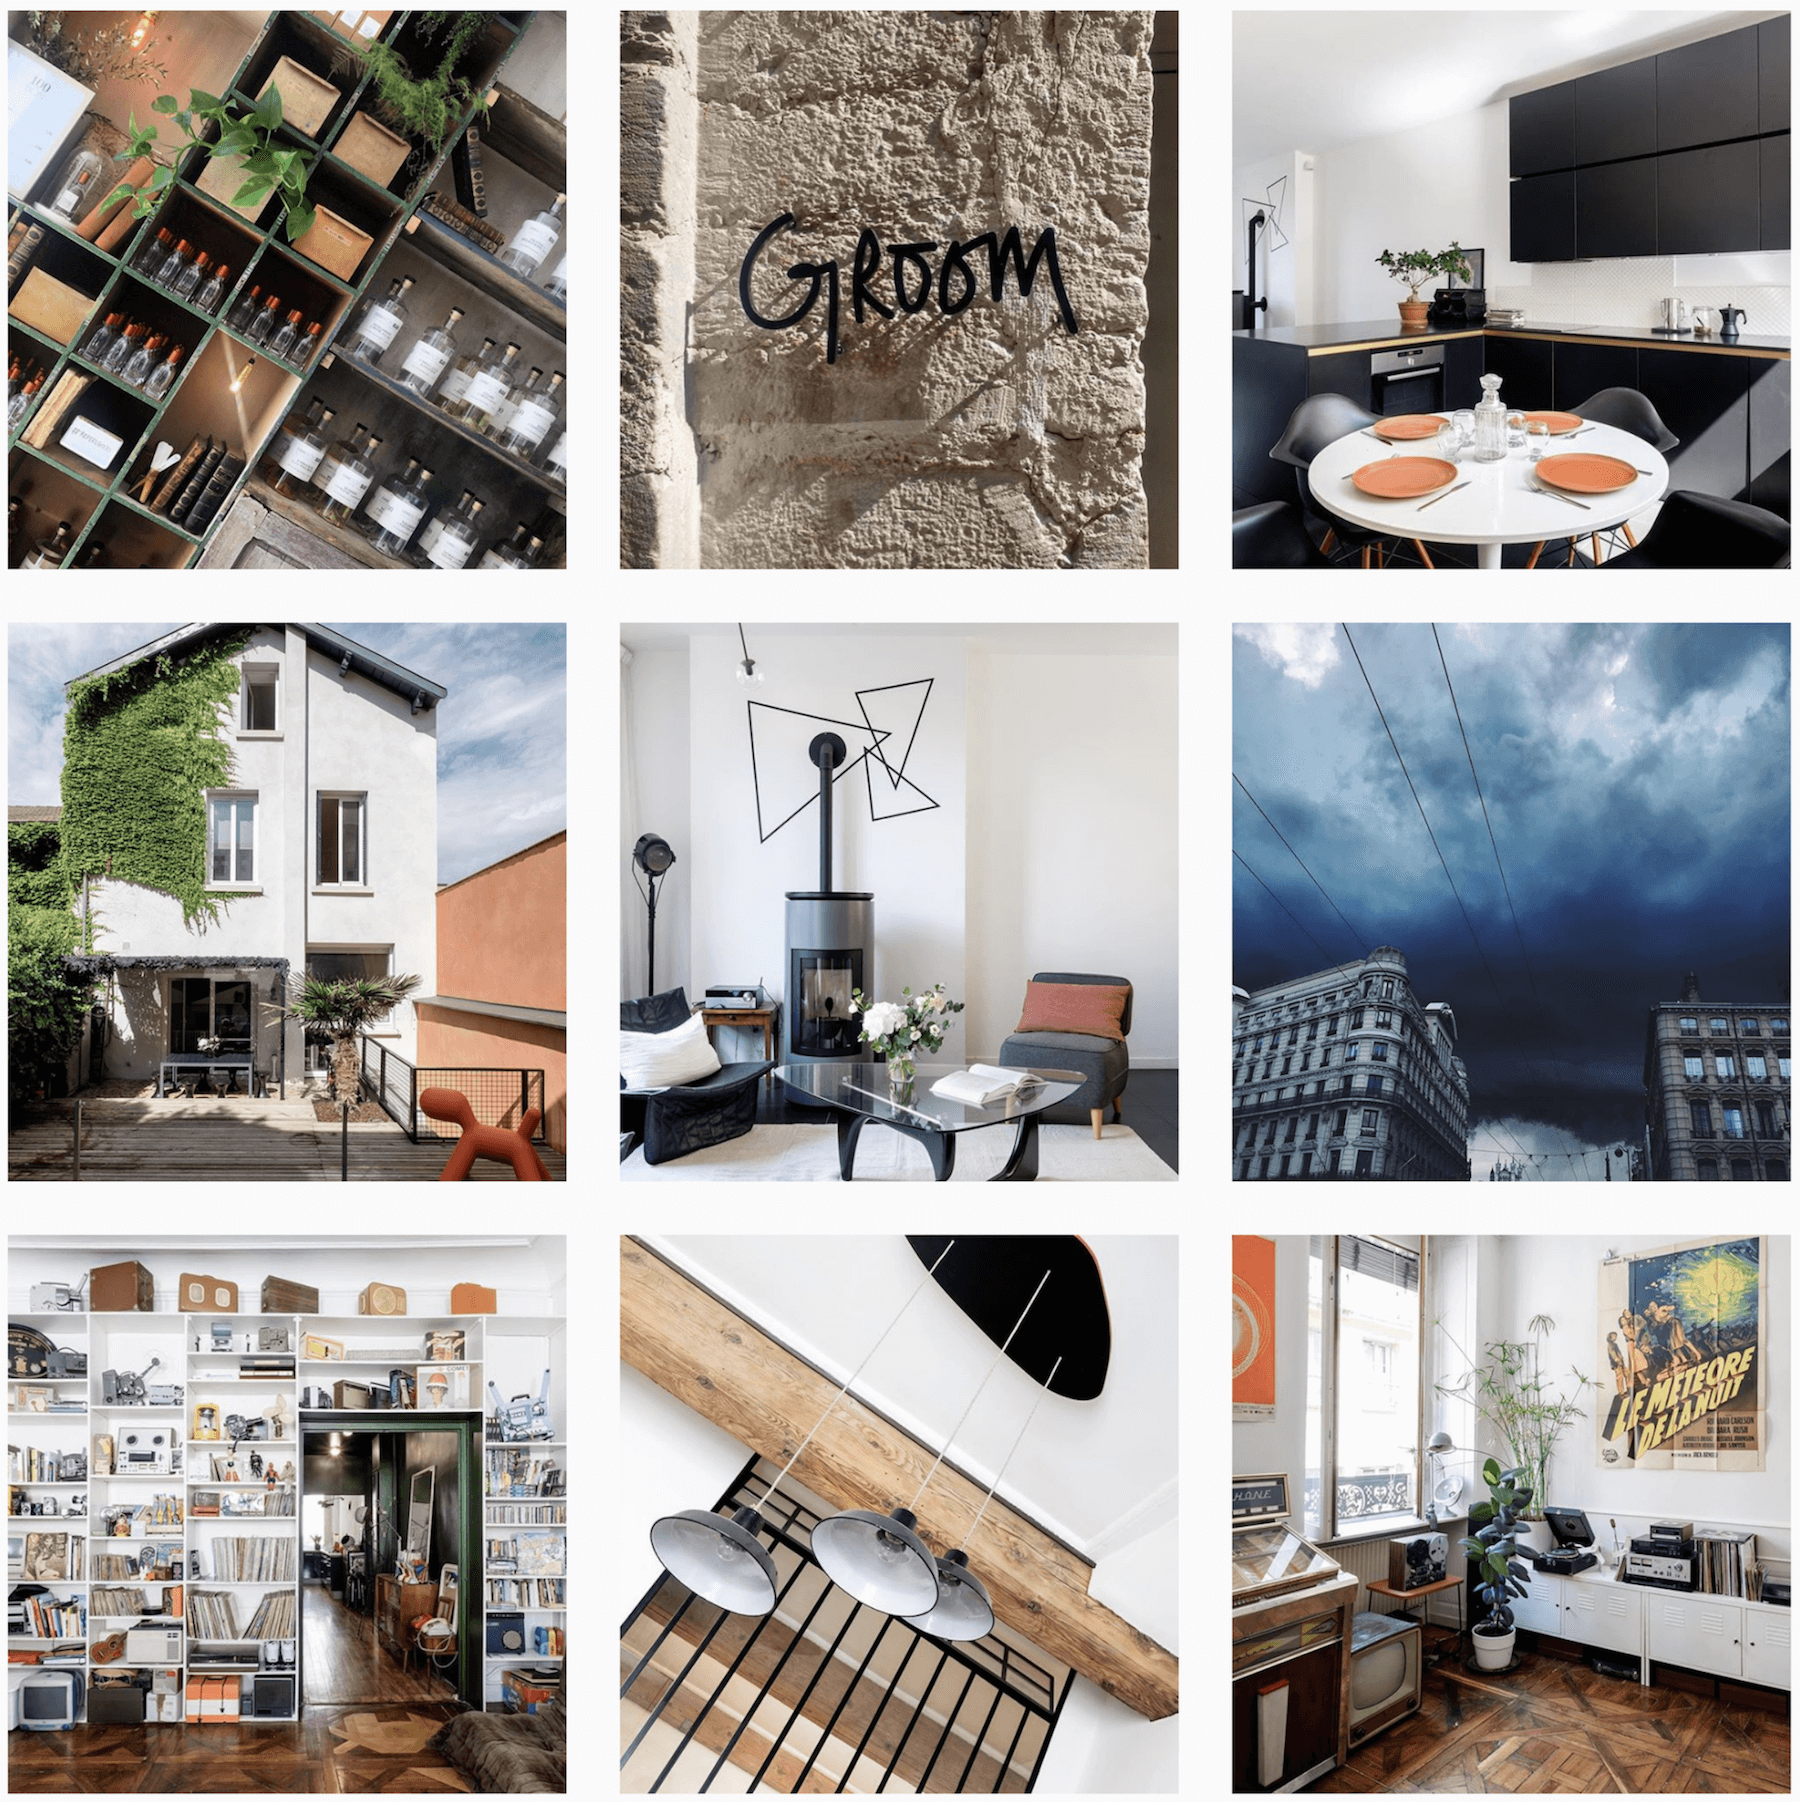 bumper-blog-news-immobilier-lyon-appartement-vente-achat-investir-homestaging-design-decoration-lifestyle-art-0.png